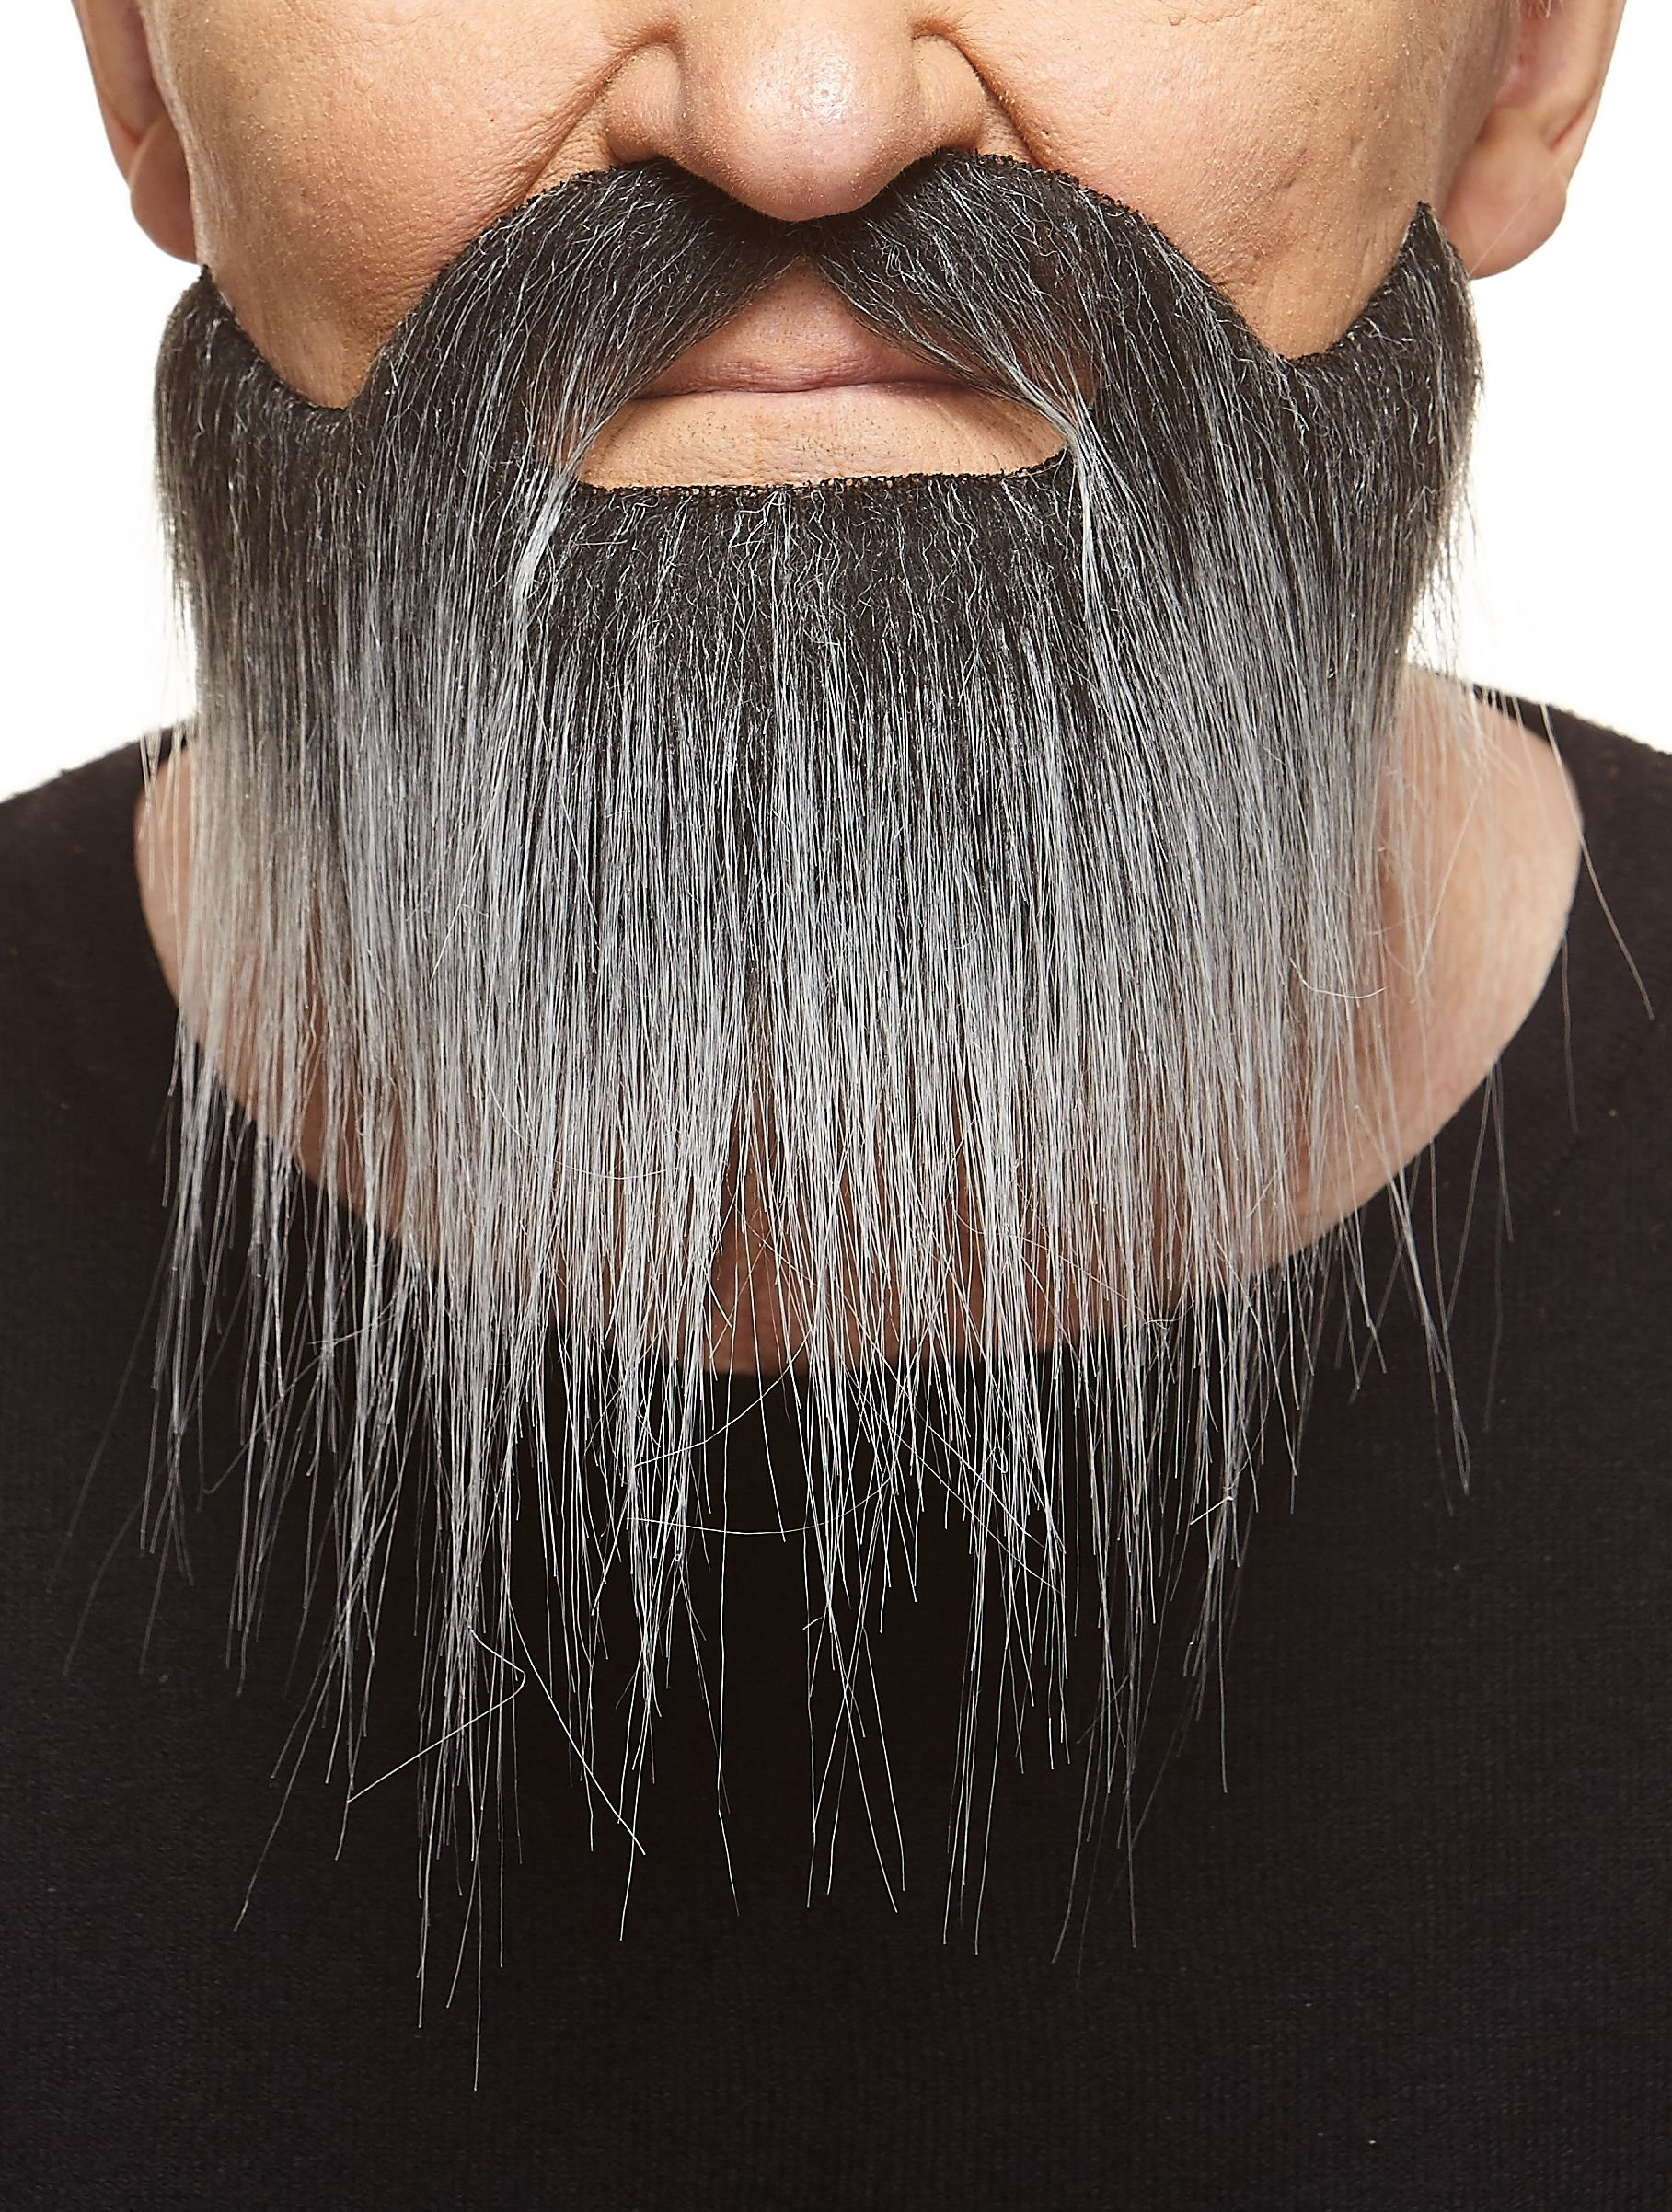 Mustaches Self Adhesive, Novelty, Fake, Long Boxed Beard, Salt and Pepper Color